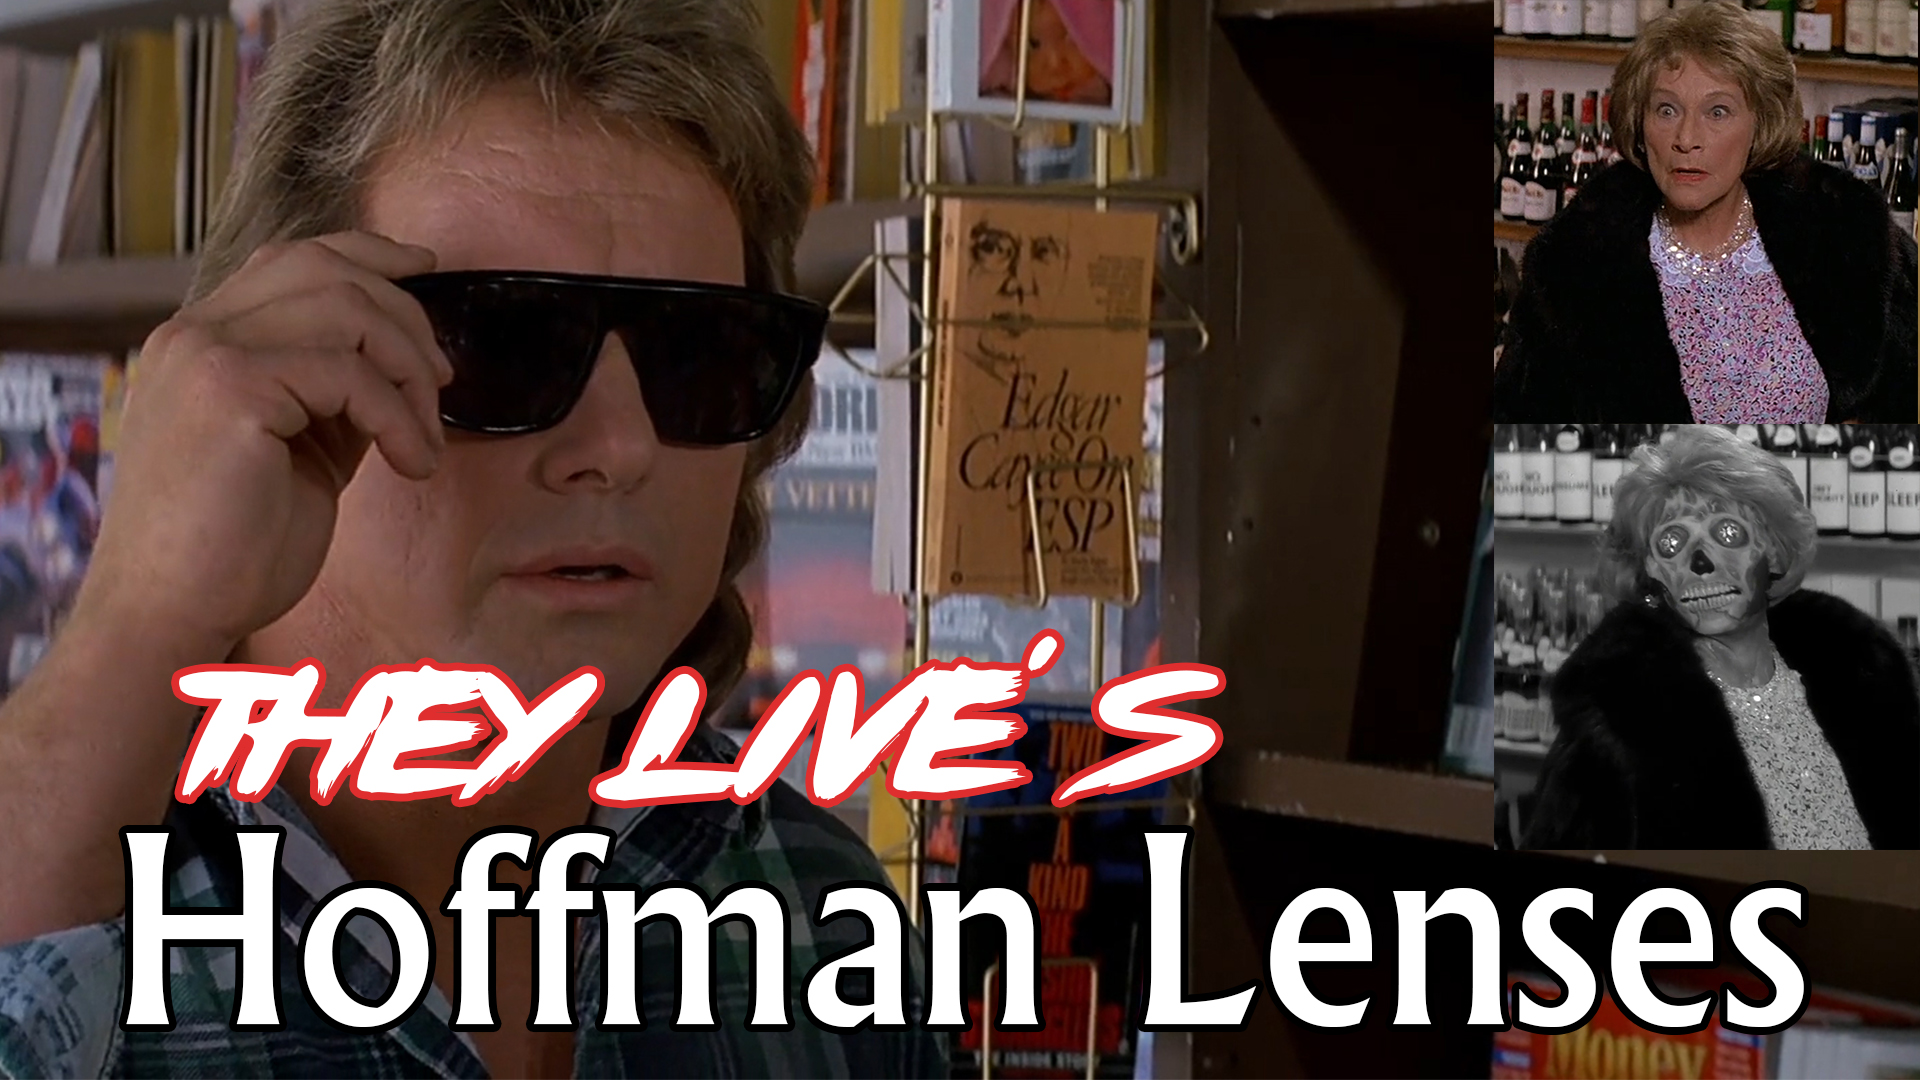 Ep. 11  They Live's Hoffman Lenses